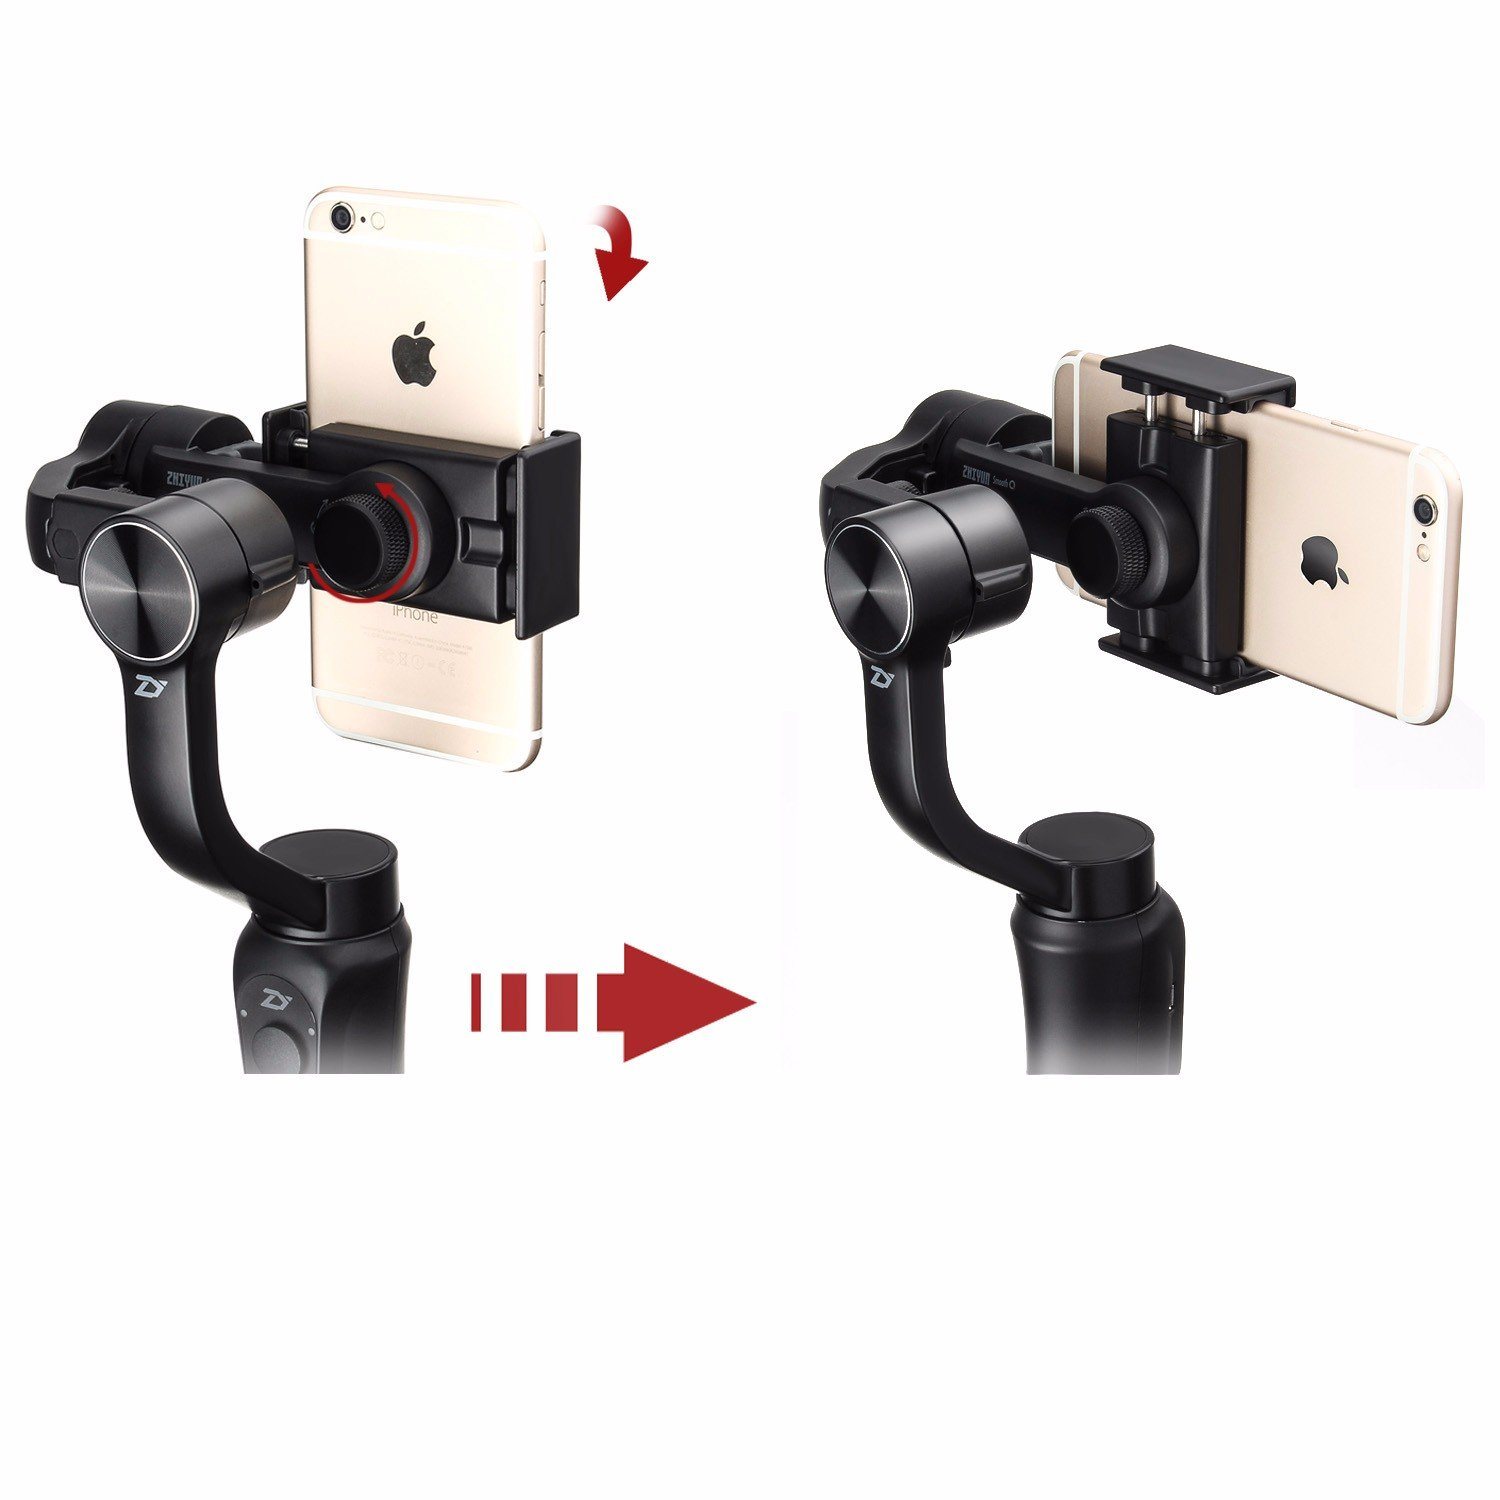 Zhiyun Smooth Q W Plate 3 Axis Handheld Gimbal Stabilizer For Tech Smartphone Gopro Hero 6 5 4 Xiaomi Yi Action Camera Wireless Control Vertical